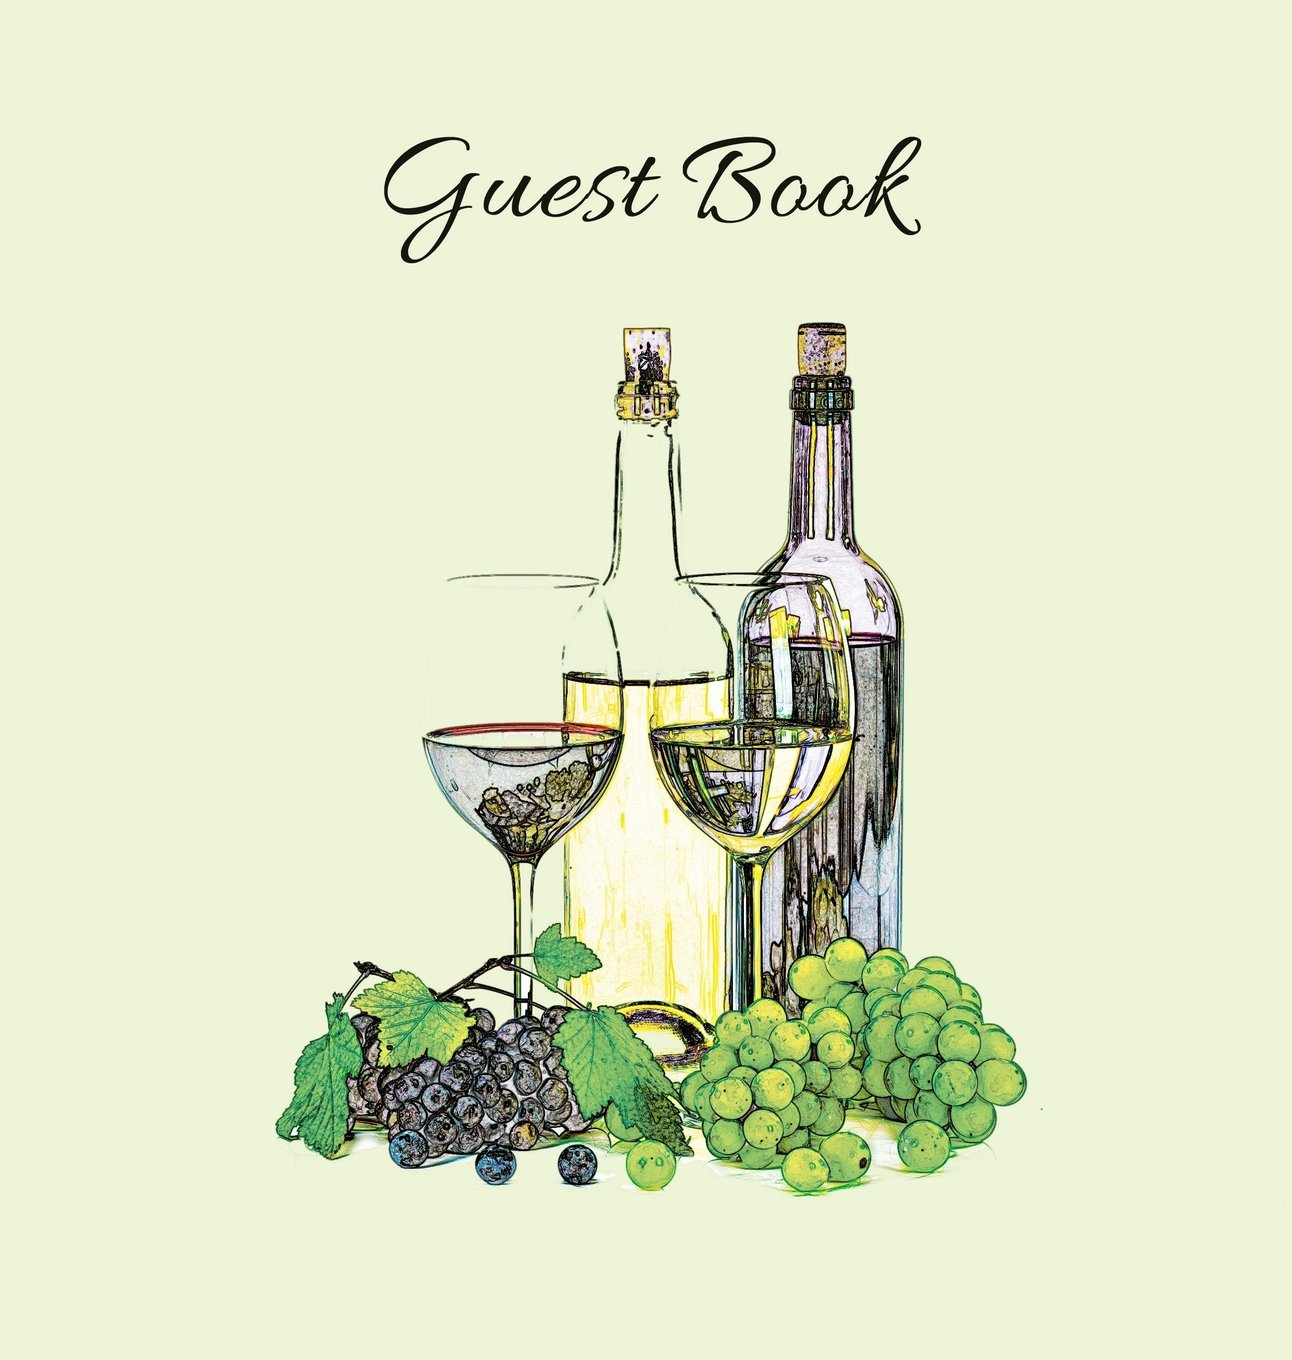 Guest Book (Hardcover), Party Guest Book, Guest Comments Book, House Guest Book, Vacation Home Guest Book, Special Events & Functions Visitors Book: ... Housewarmings, Commemorations, House G